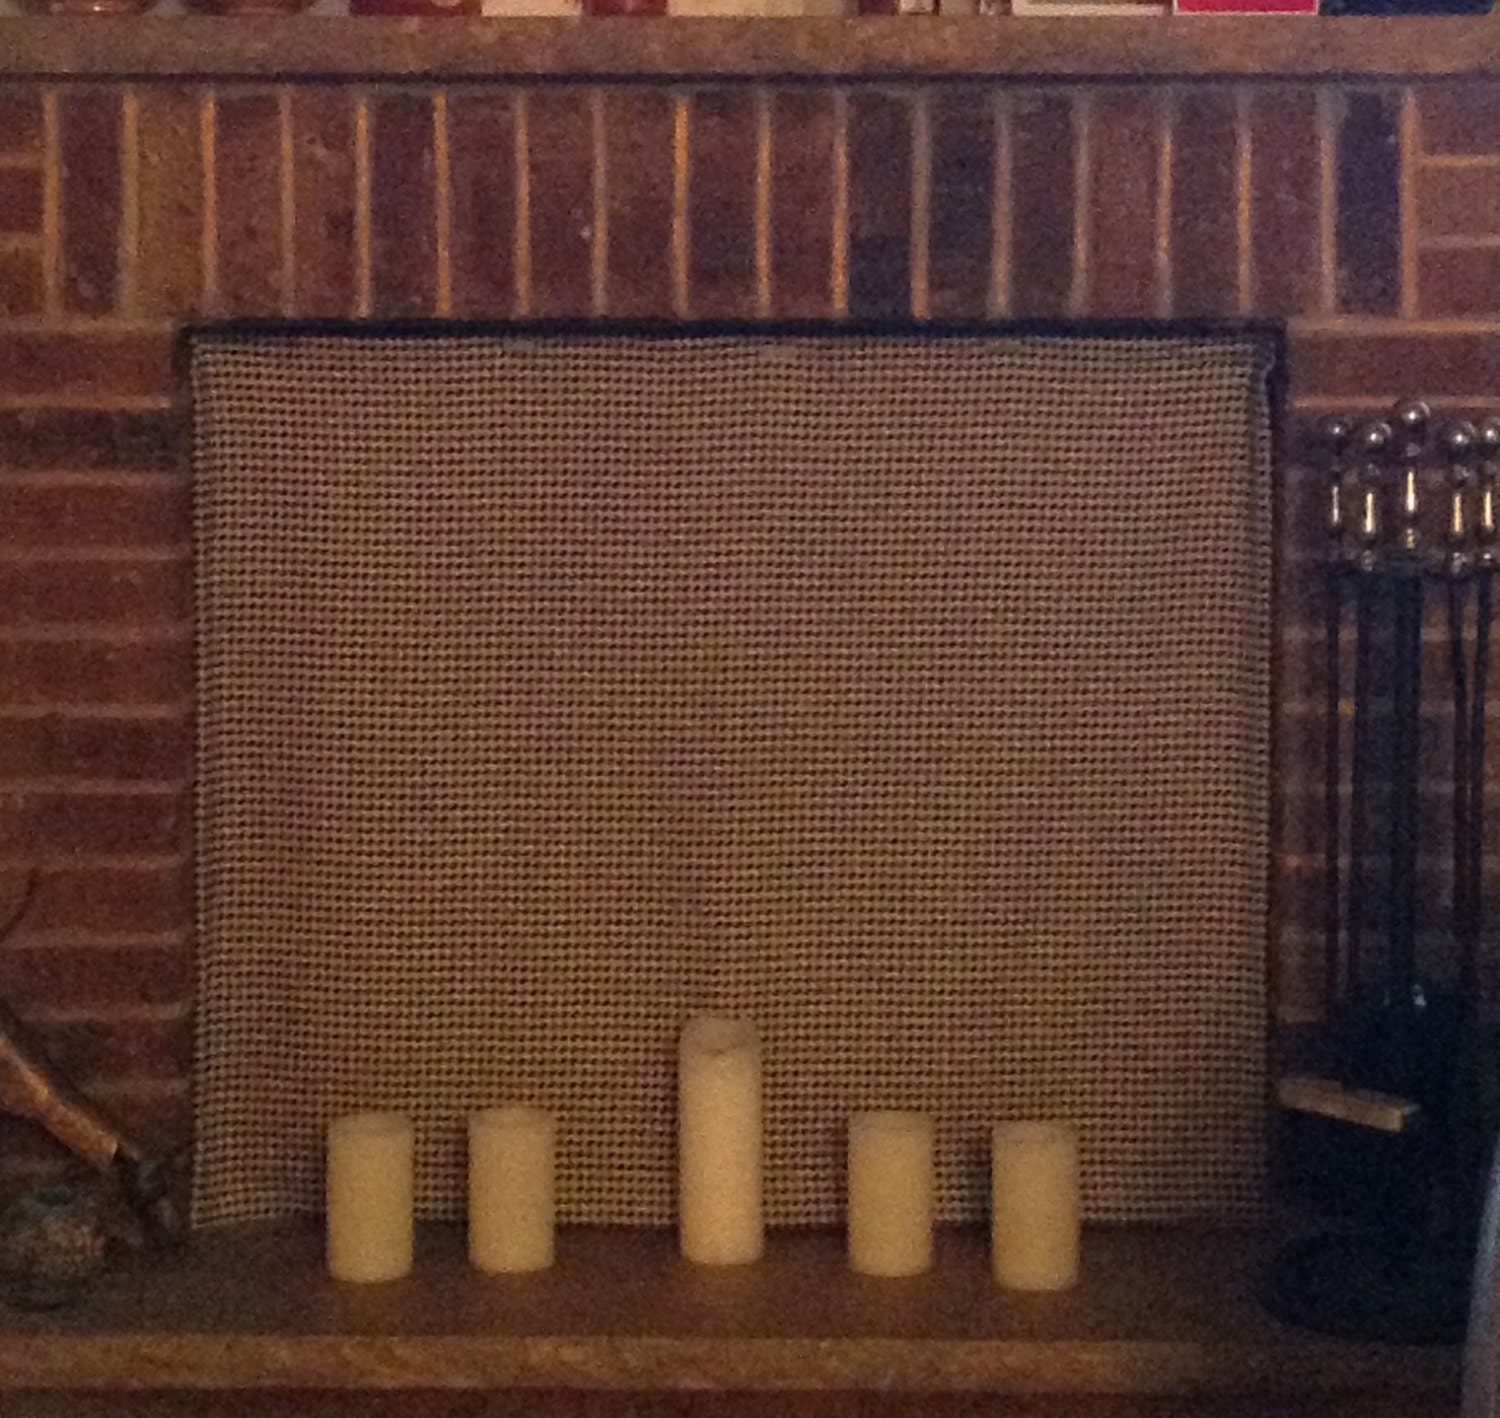 Fireplace Cover With Inserted Magnets For Metal Screens